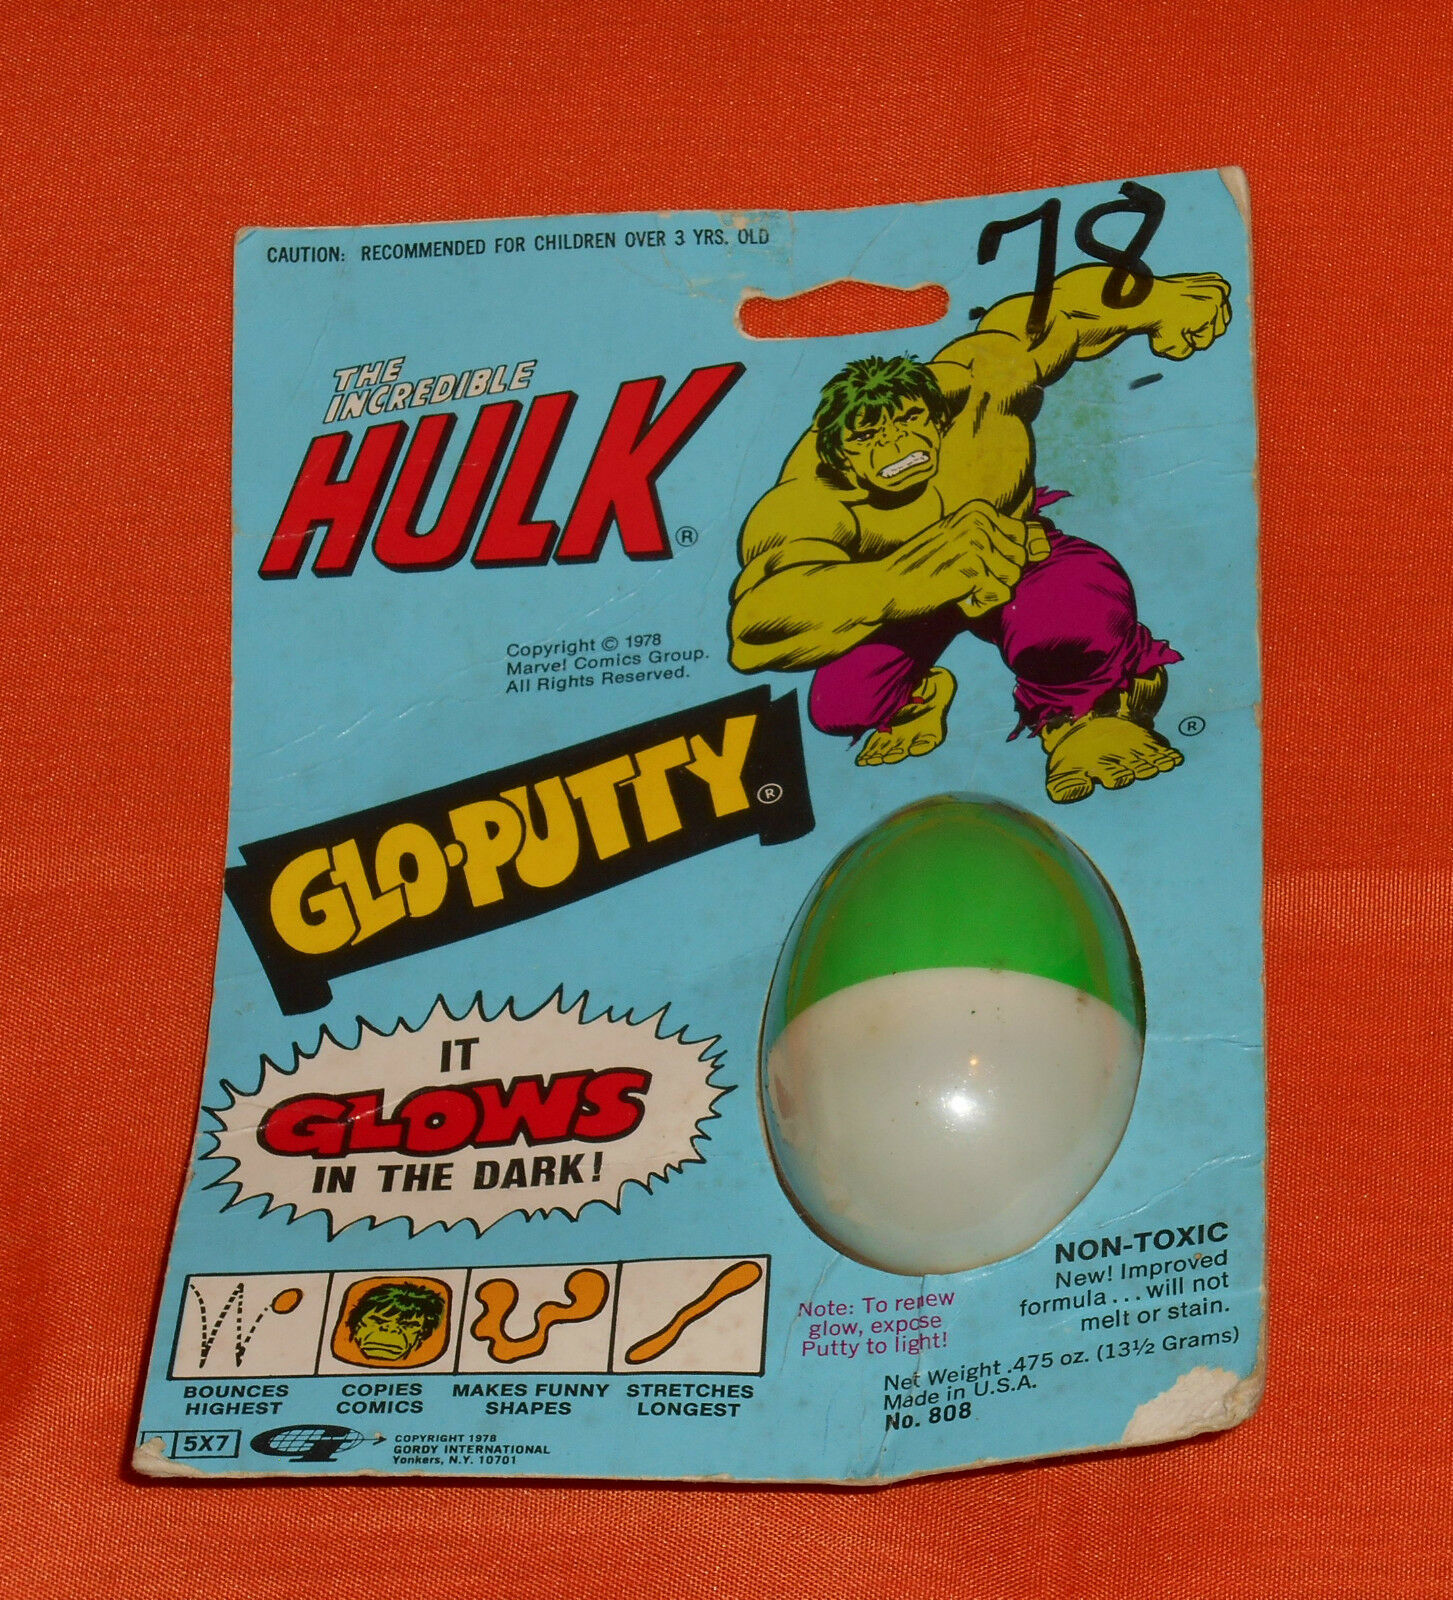 Vintage Gordy THE INCrotIBLE HULK GLO-PUTTY MOC